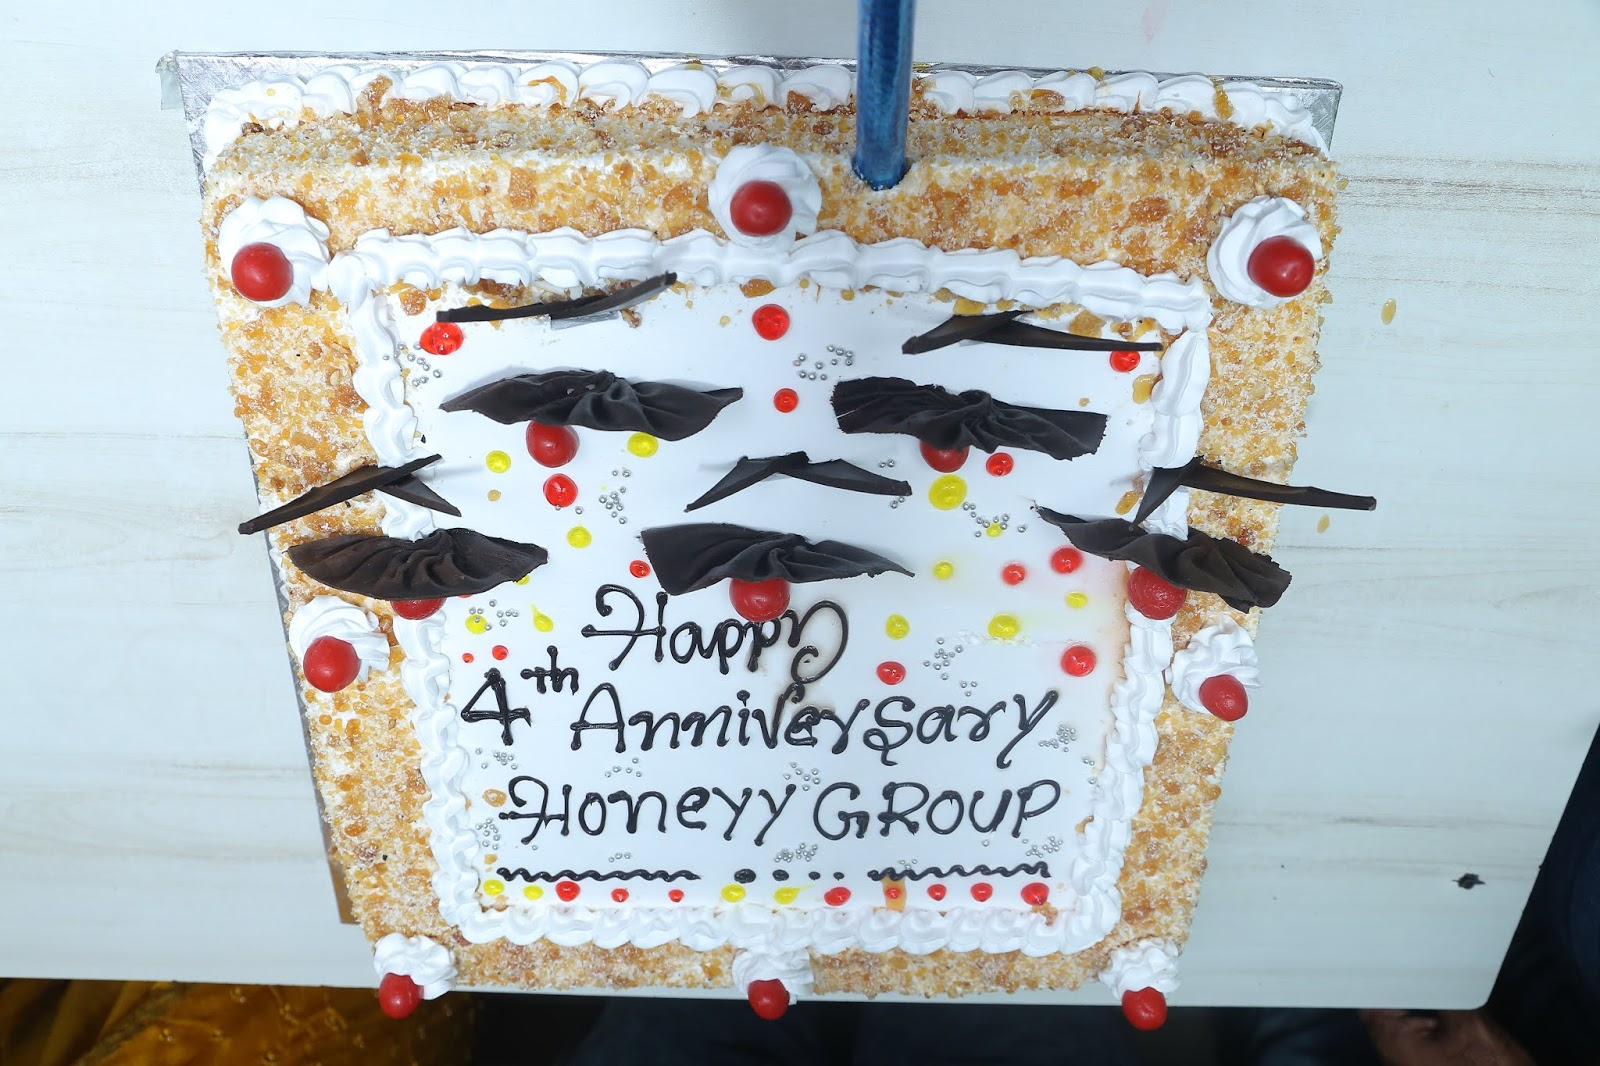 HoneyyGroup 4th Anniversary